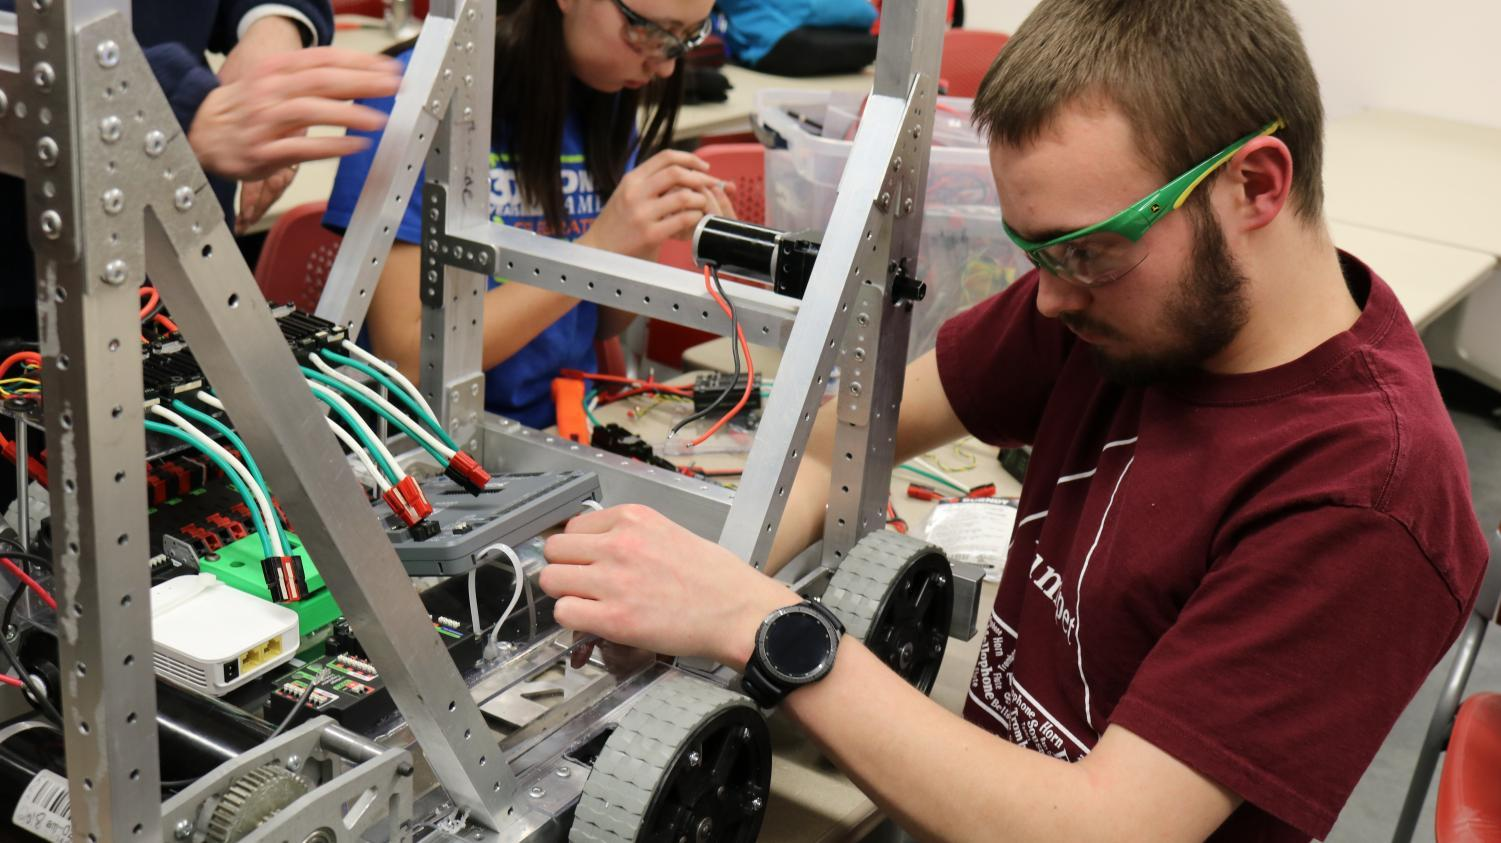 Senior Joel Neppl examines the wiring of the team robot.